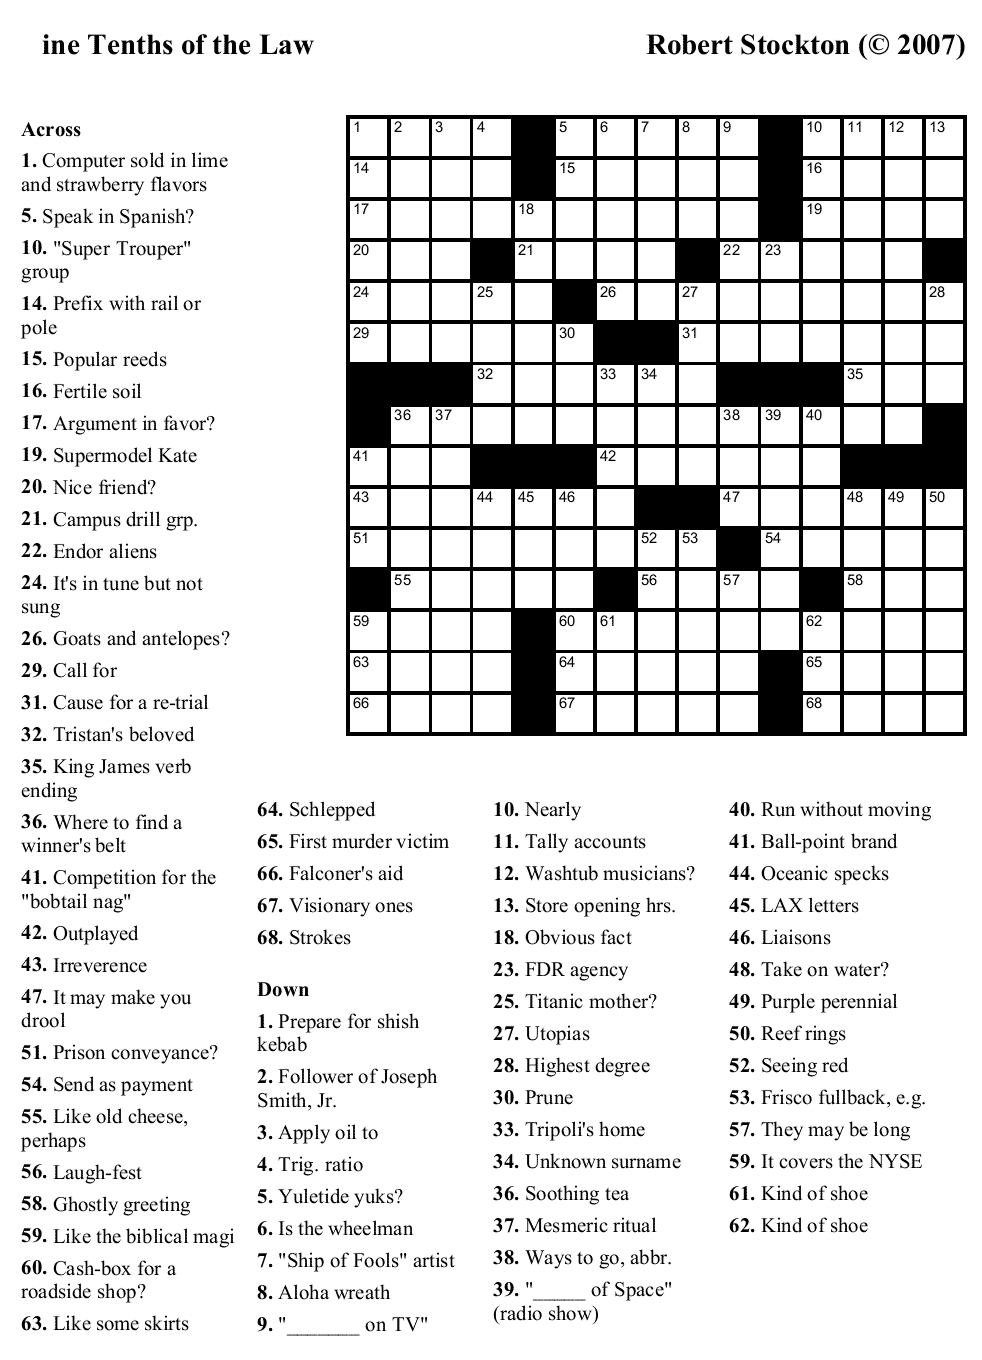 Crossword Puzzles Printable - Yahoo Image Search Results | Crossword - Printable Crossword Puzzles By Topic